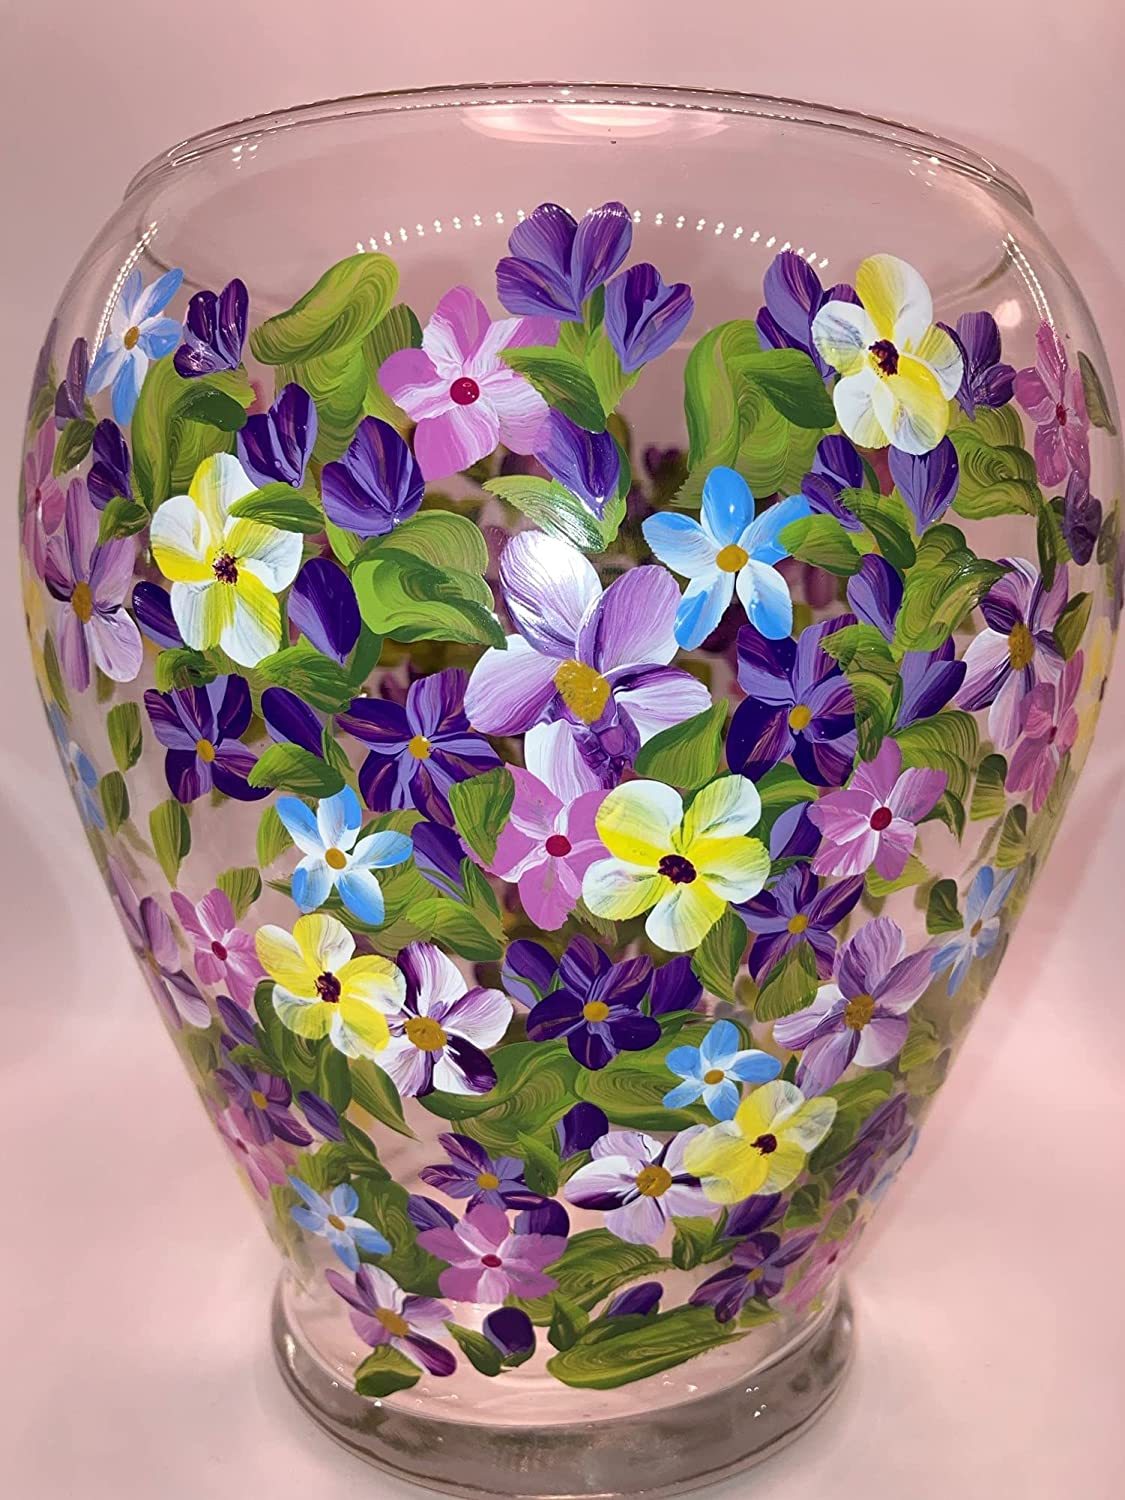 Created by EverMyHart Hand Painted Bouquet Same day shipping - Summer Online limited product Vase